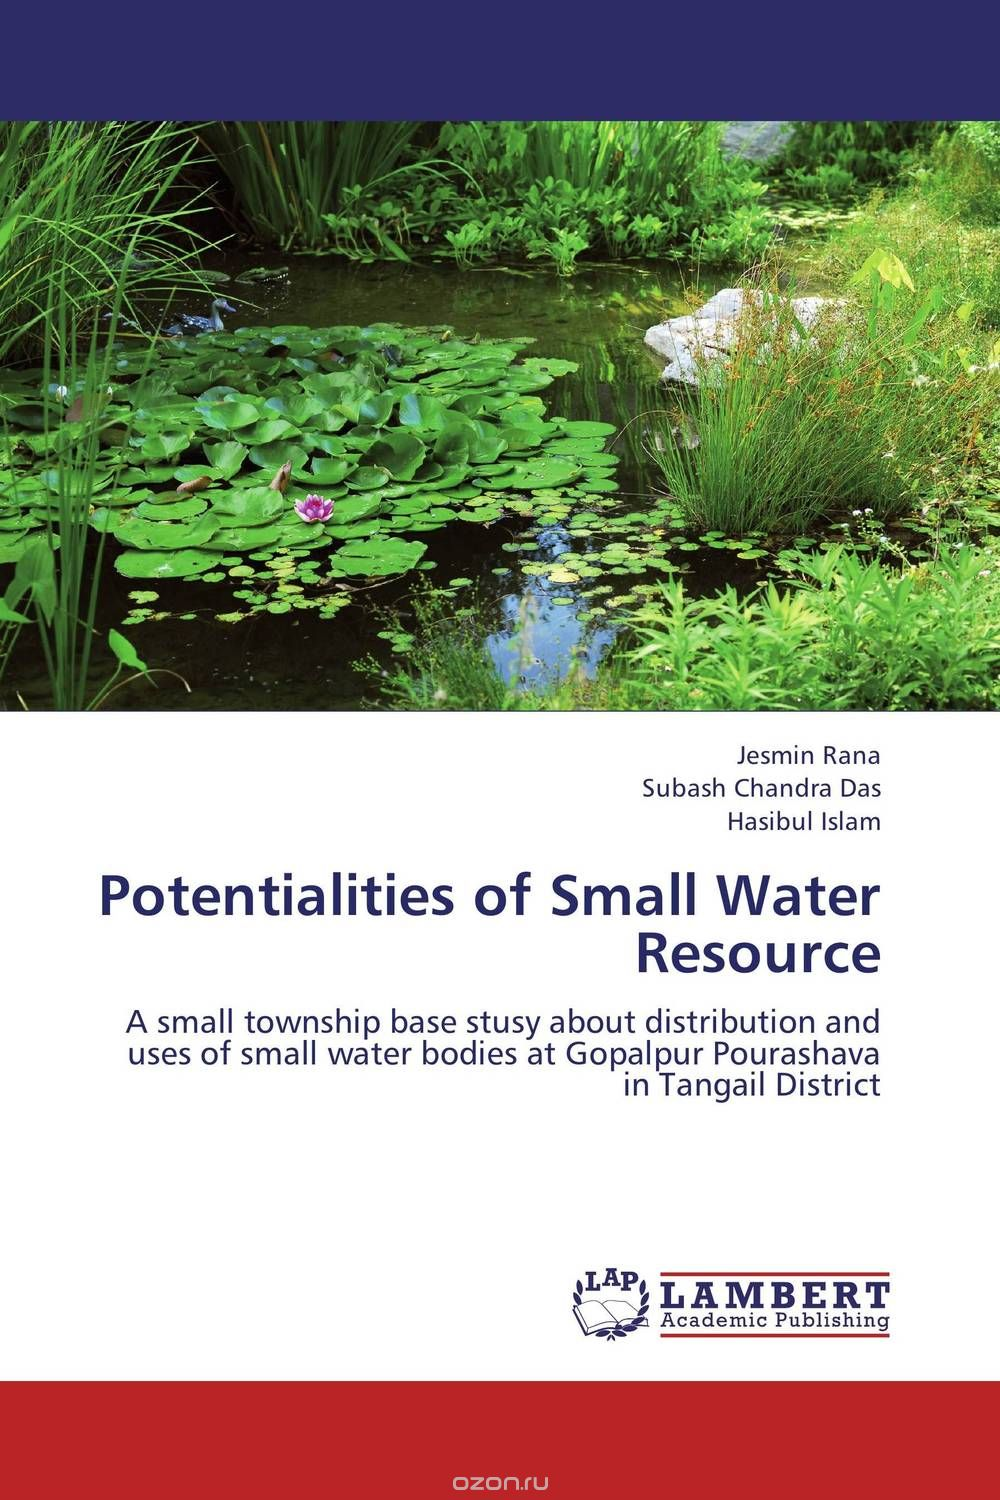 Potentialities of Small Water Resource